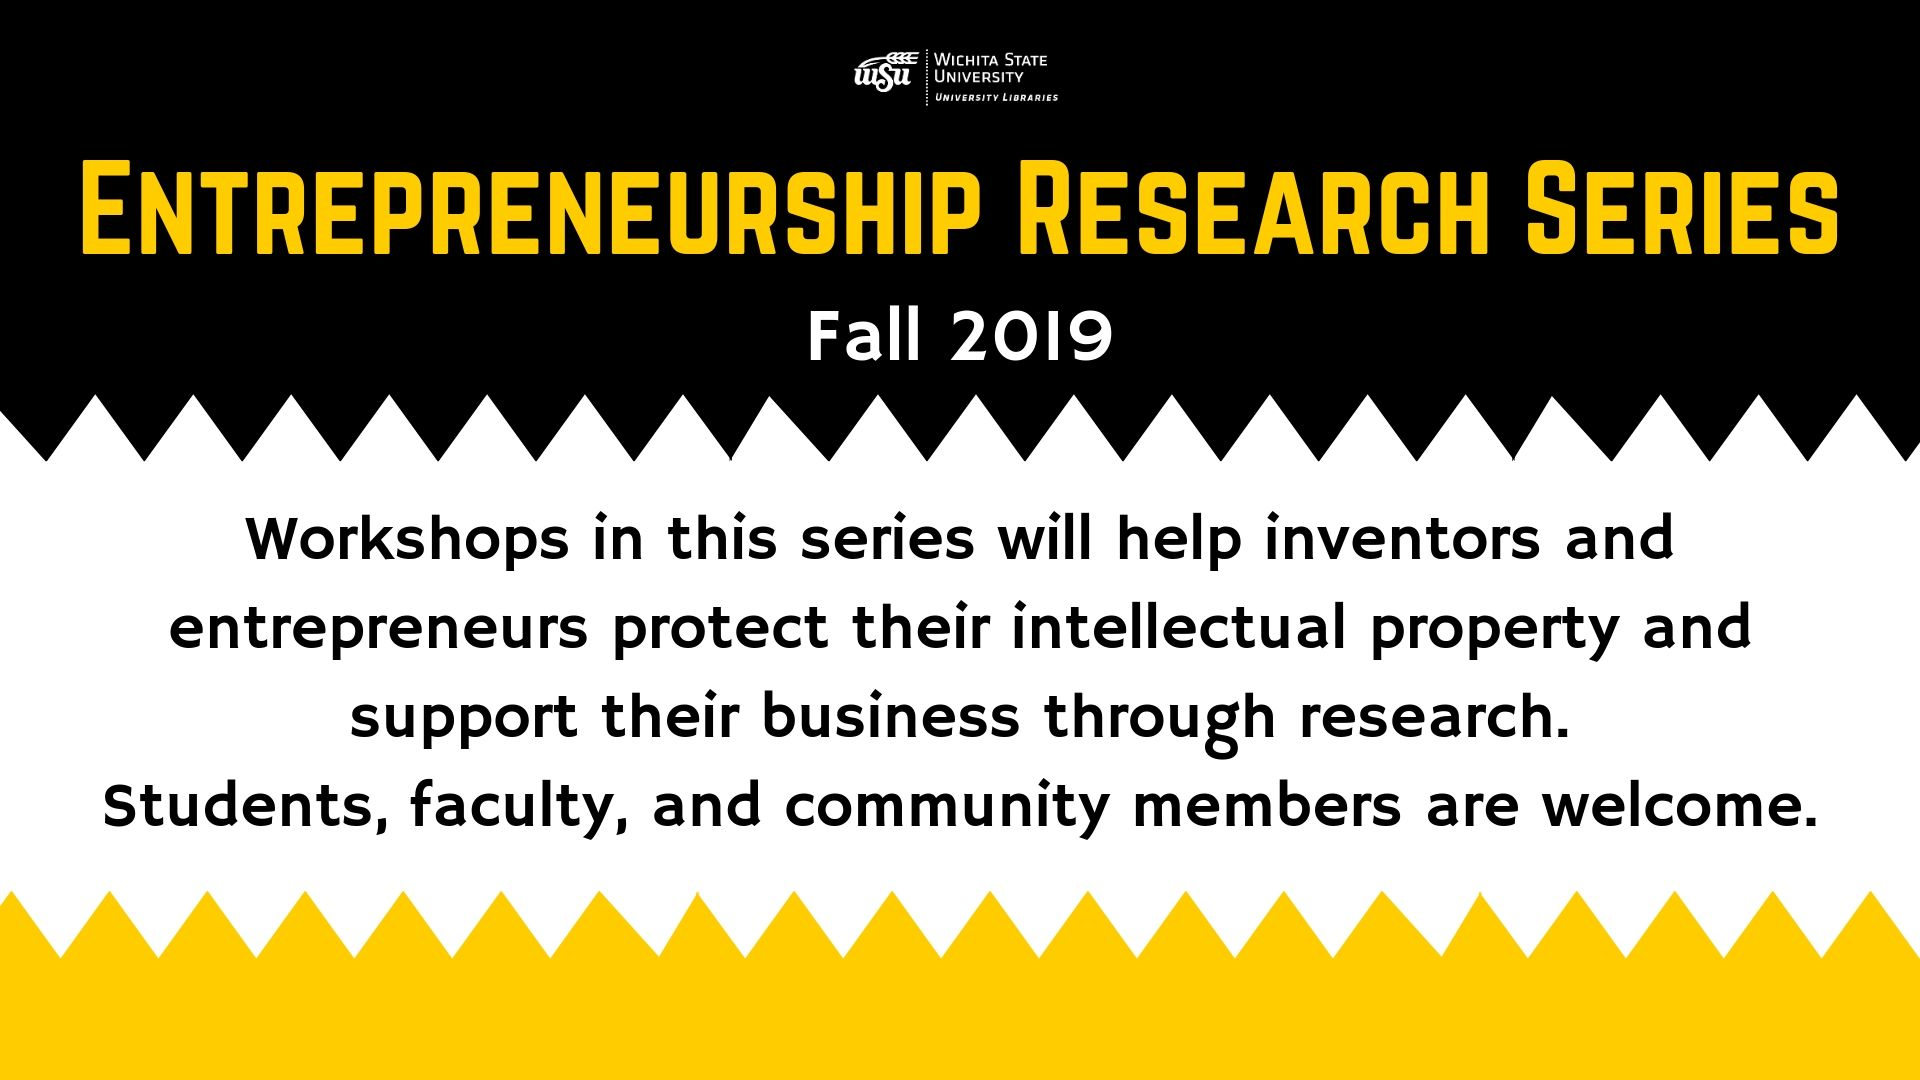 Entrepreneurship Research Series Fall 2019. Workshops are free and open to the public. Please RSVP below.